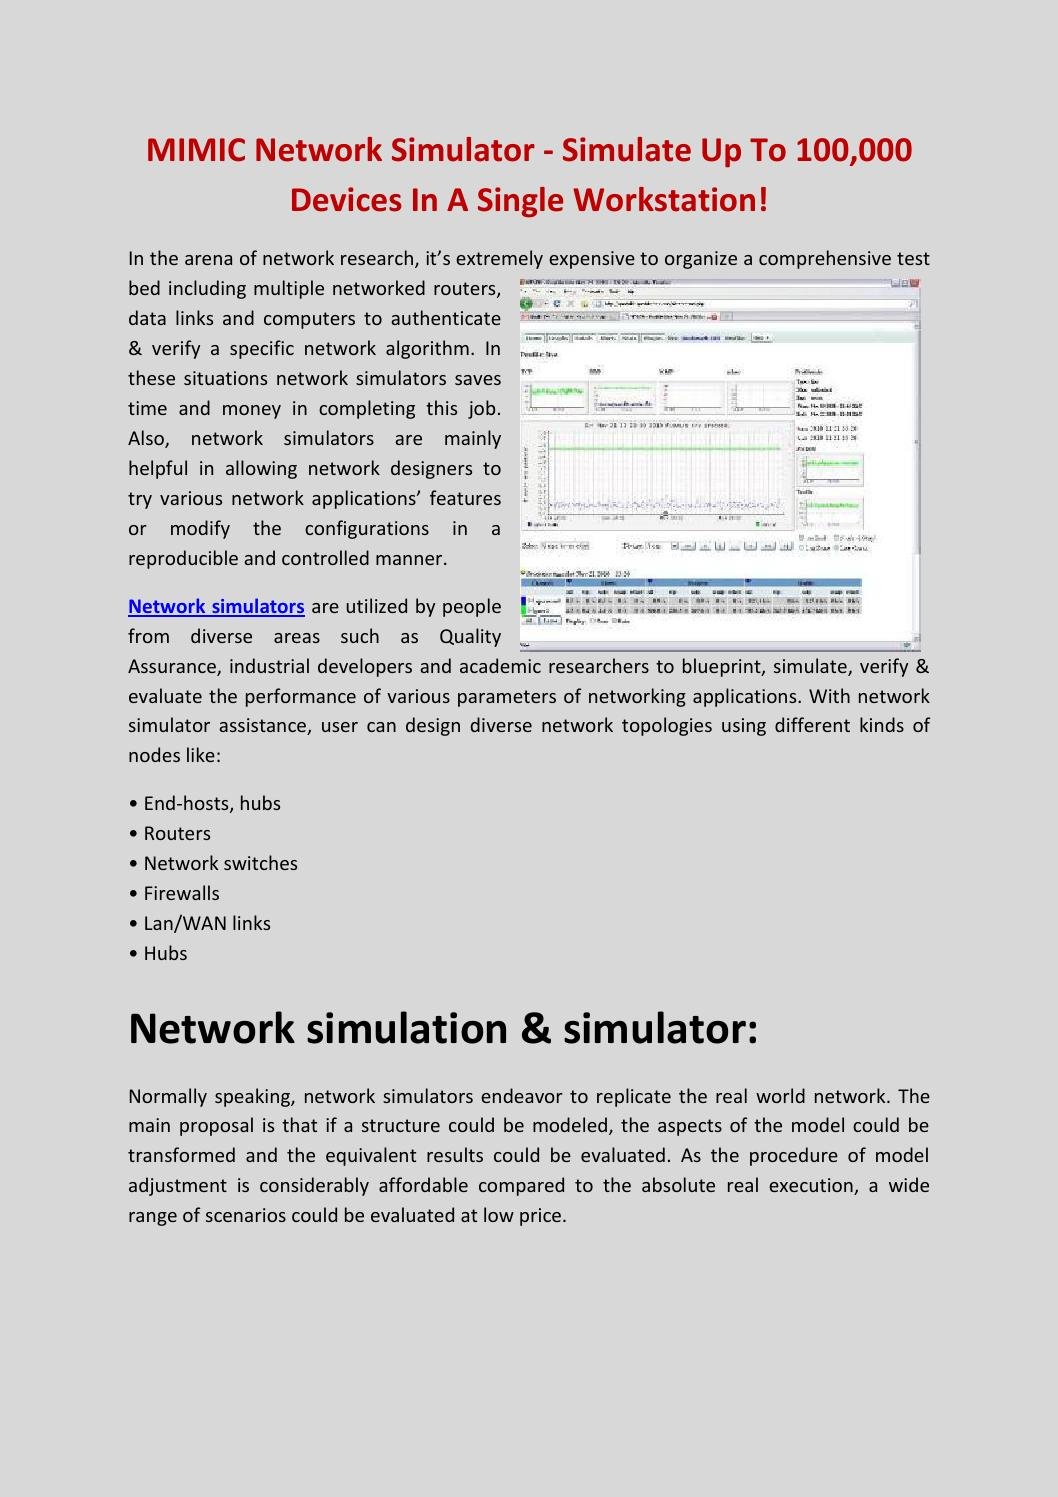 Mimic network simulator simulate up to 100,000 devices in a single